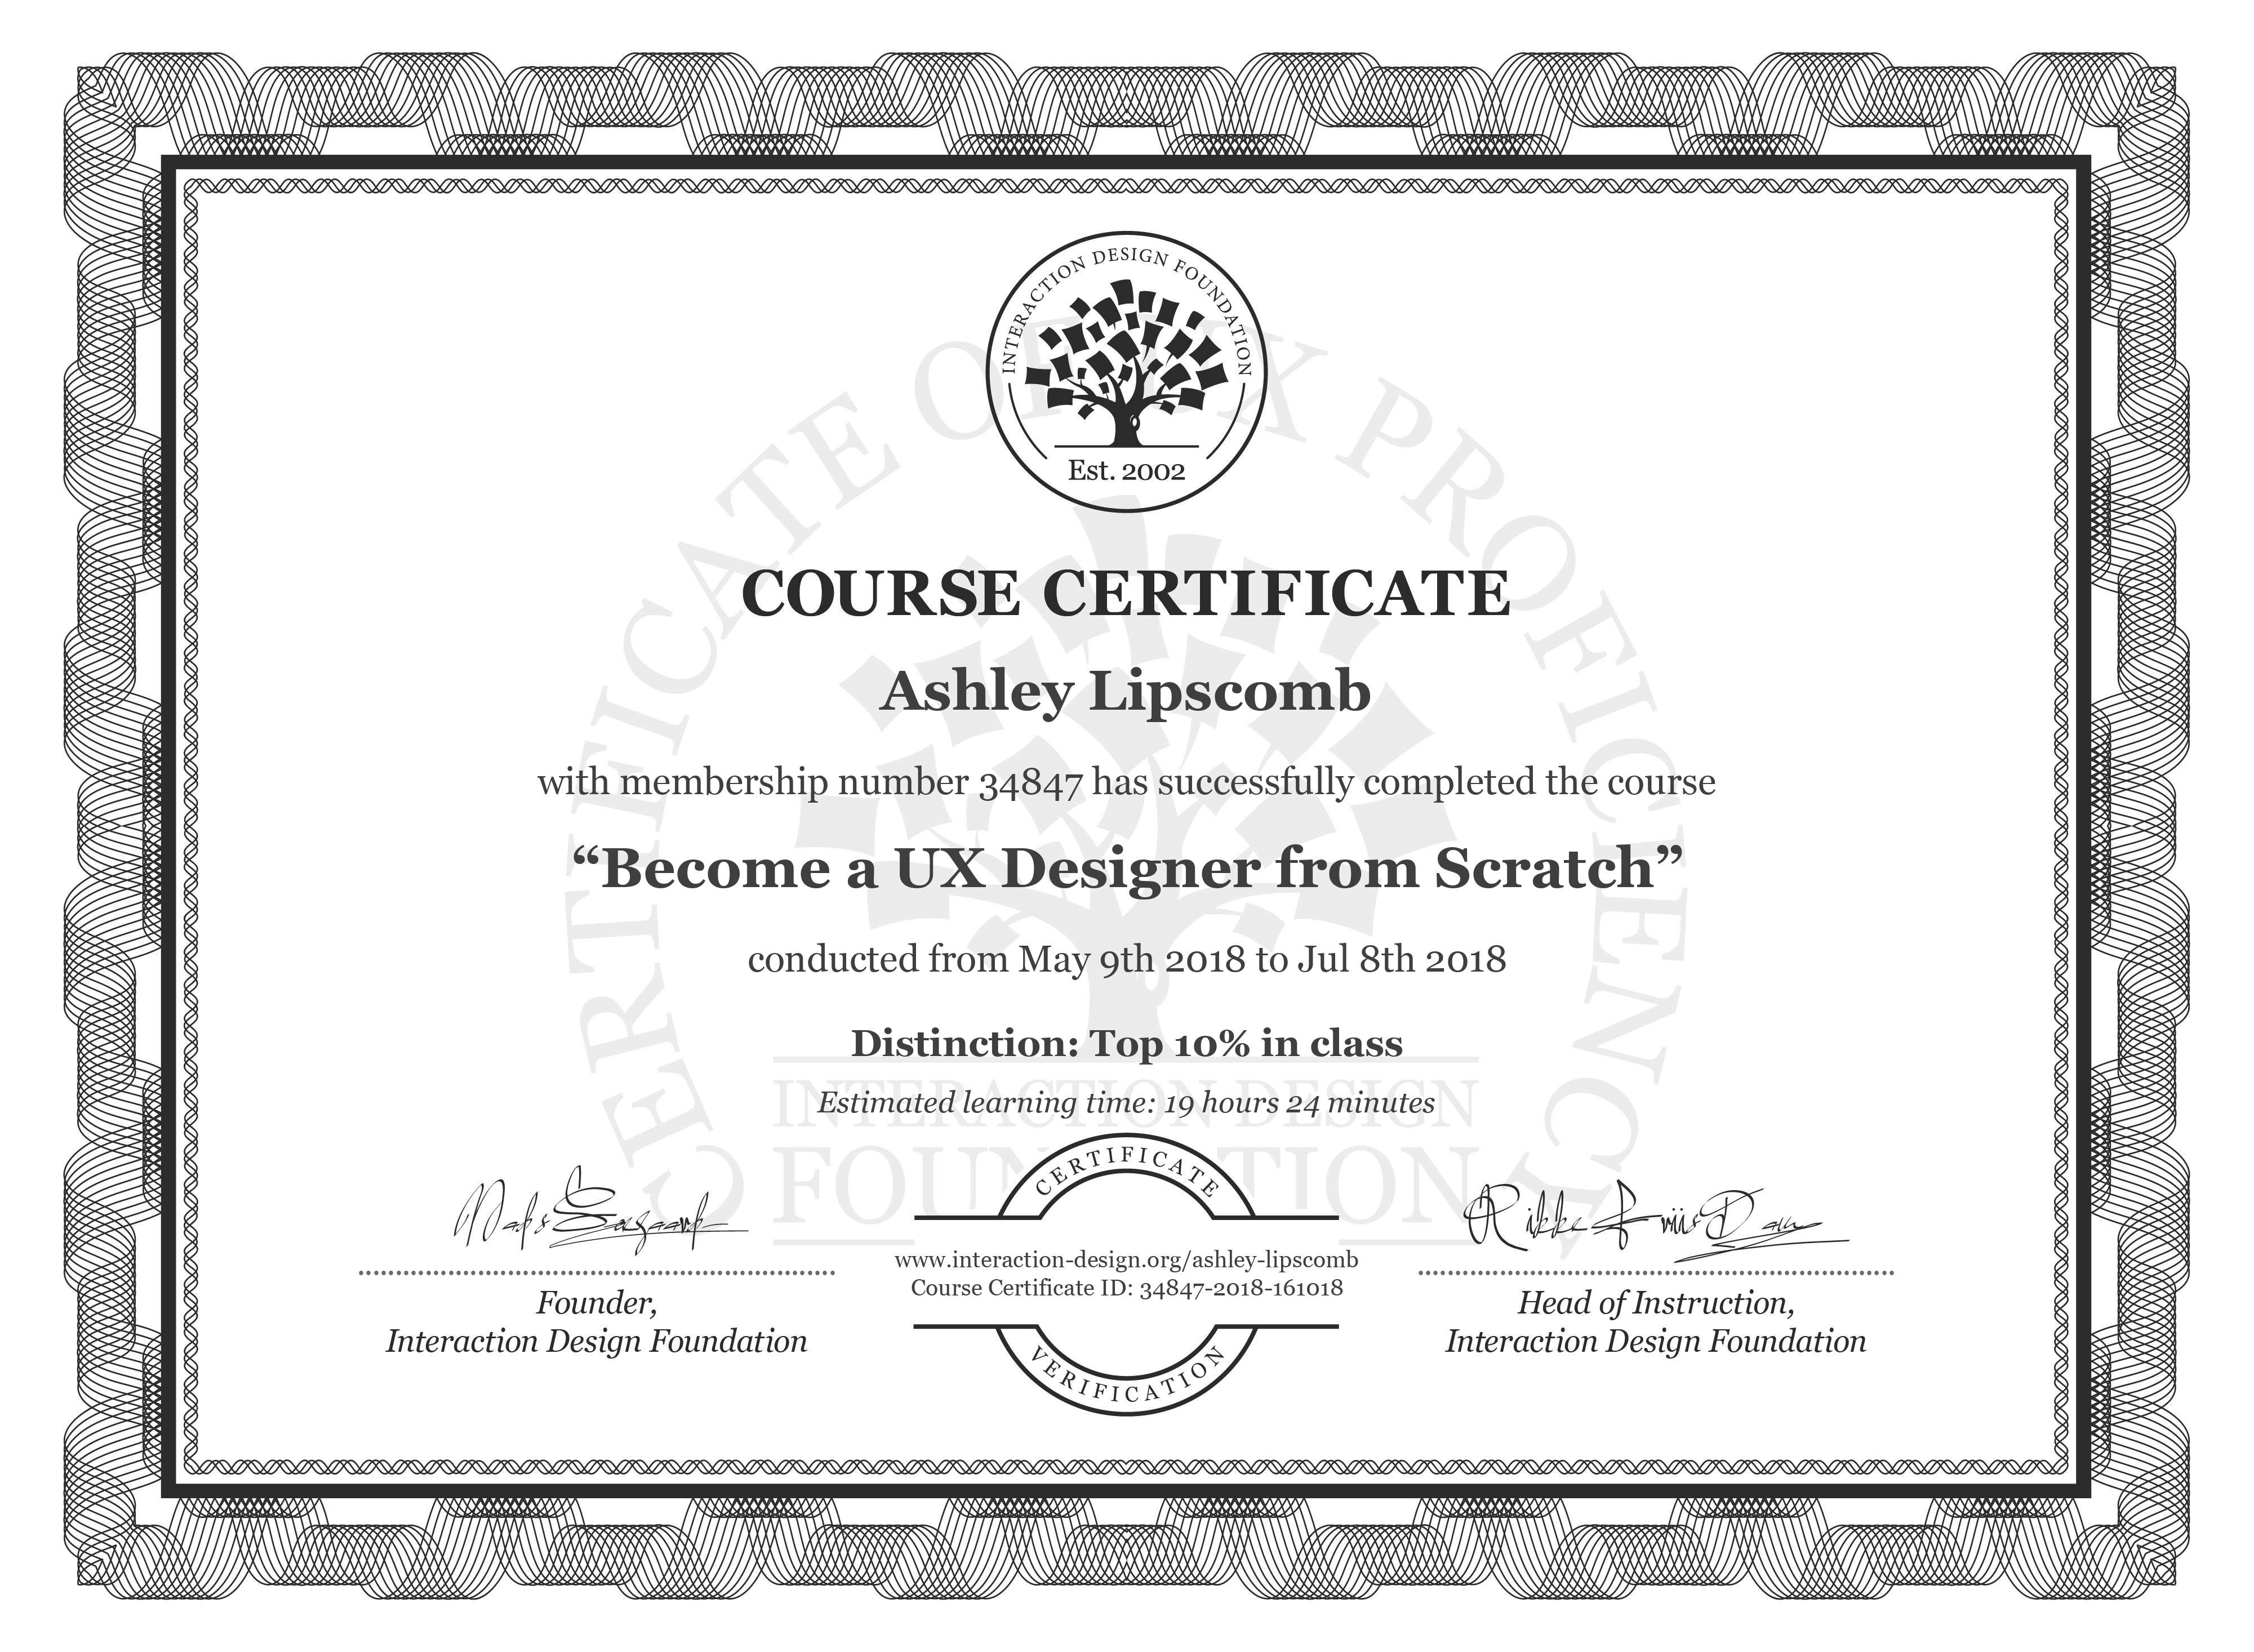 Ashley Lipscomb: Course Certificate - User Experience: The Beginner's Guide